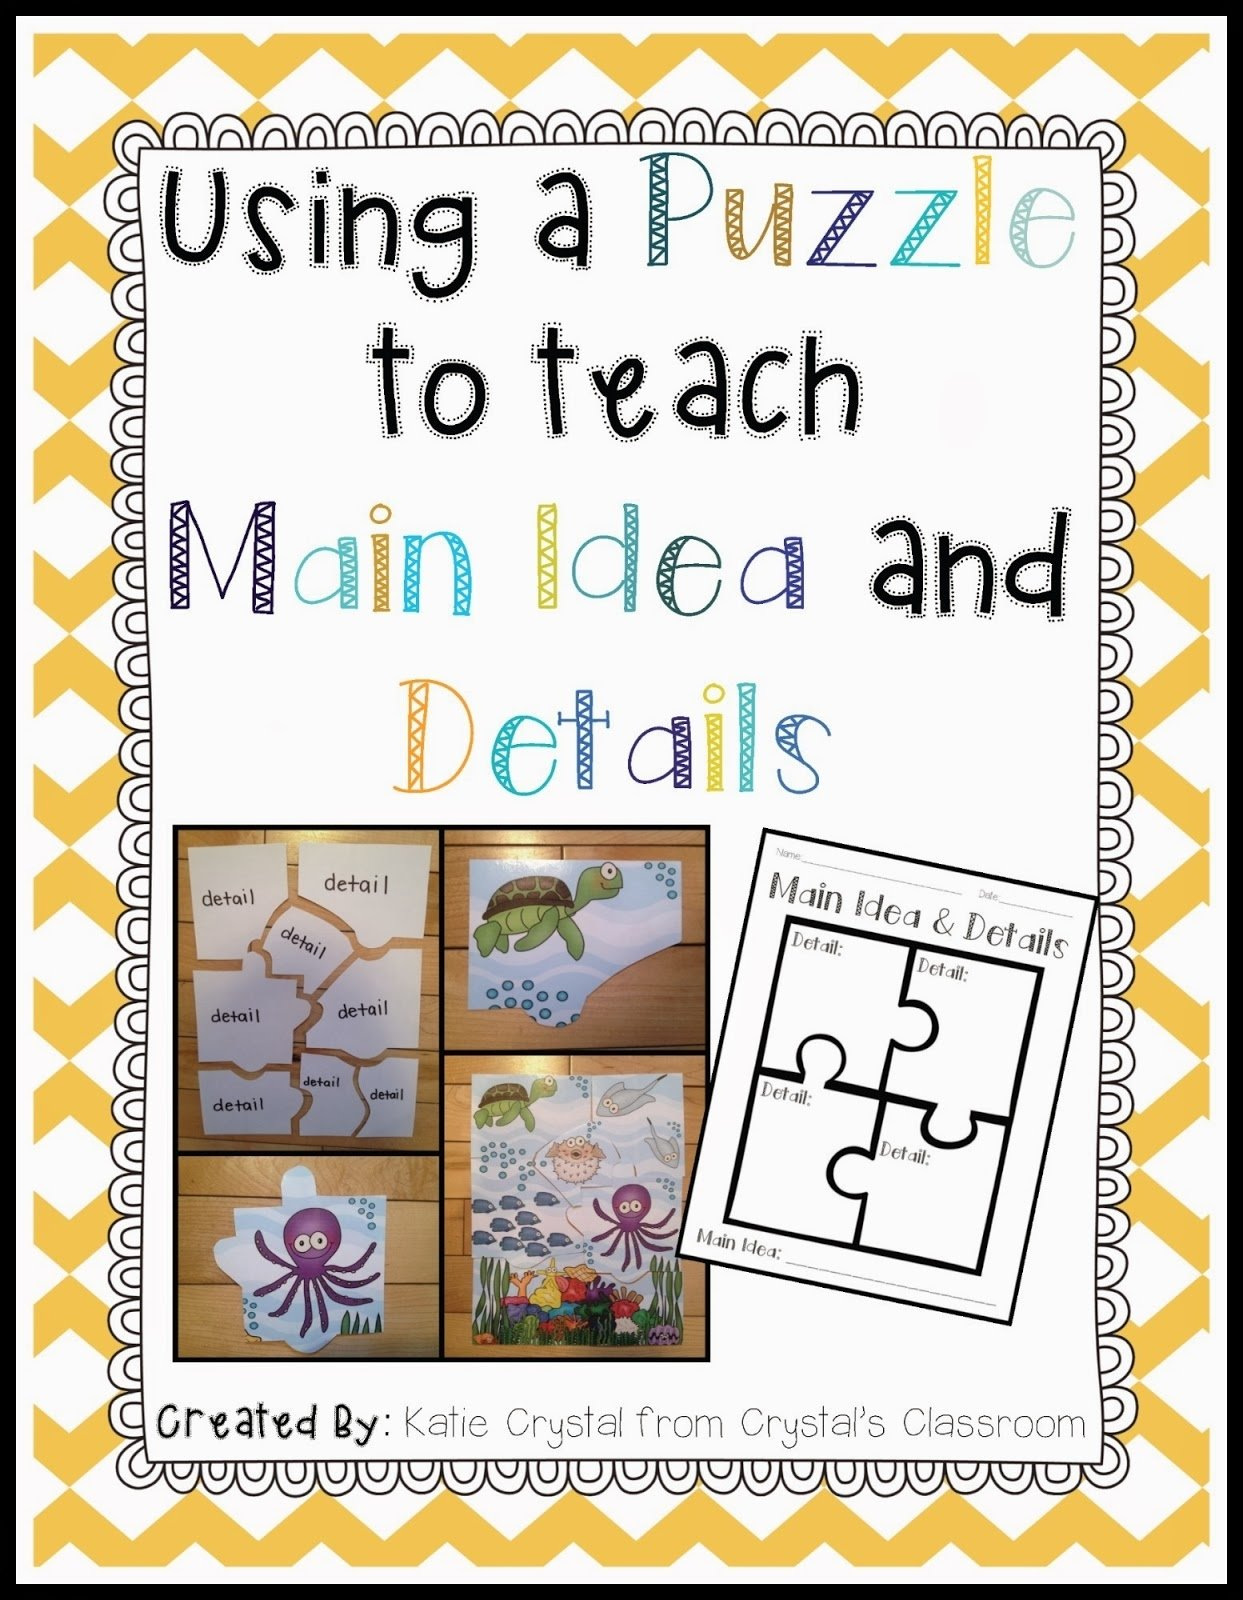 crystal's classroom: using a puzzle to teach main idea and details